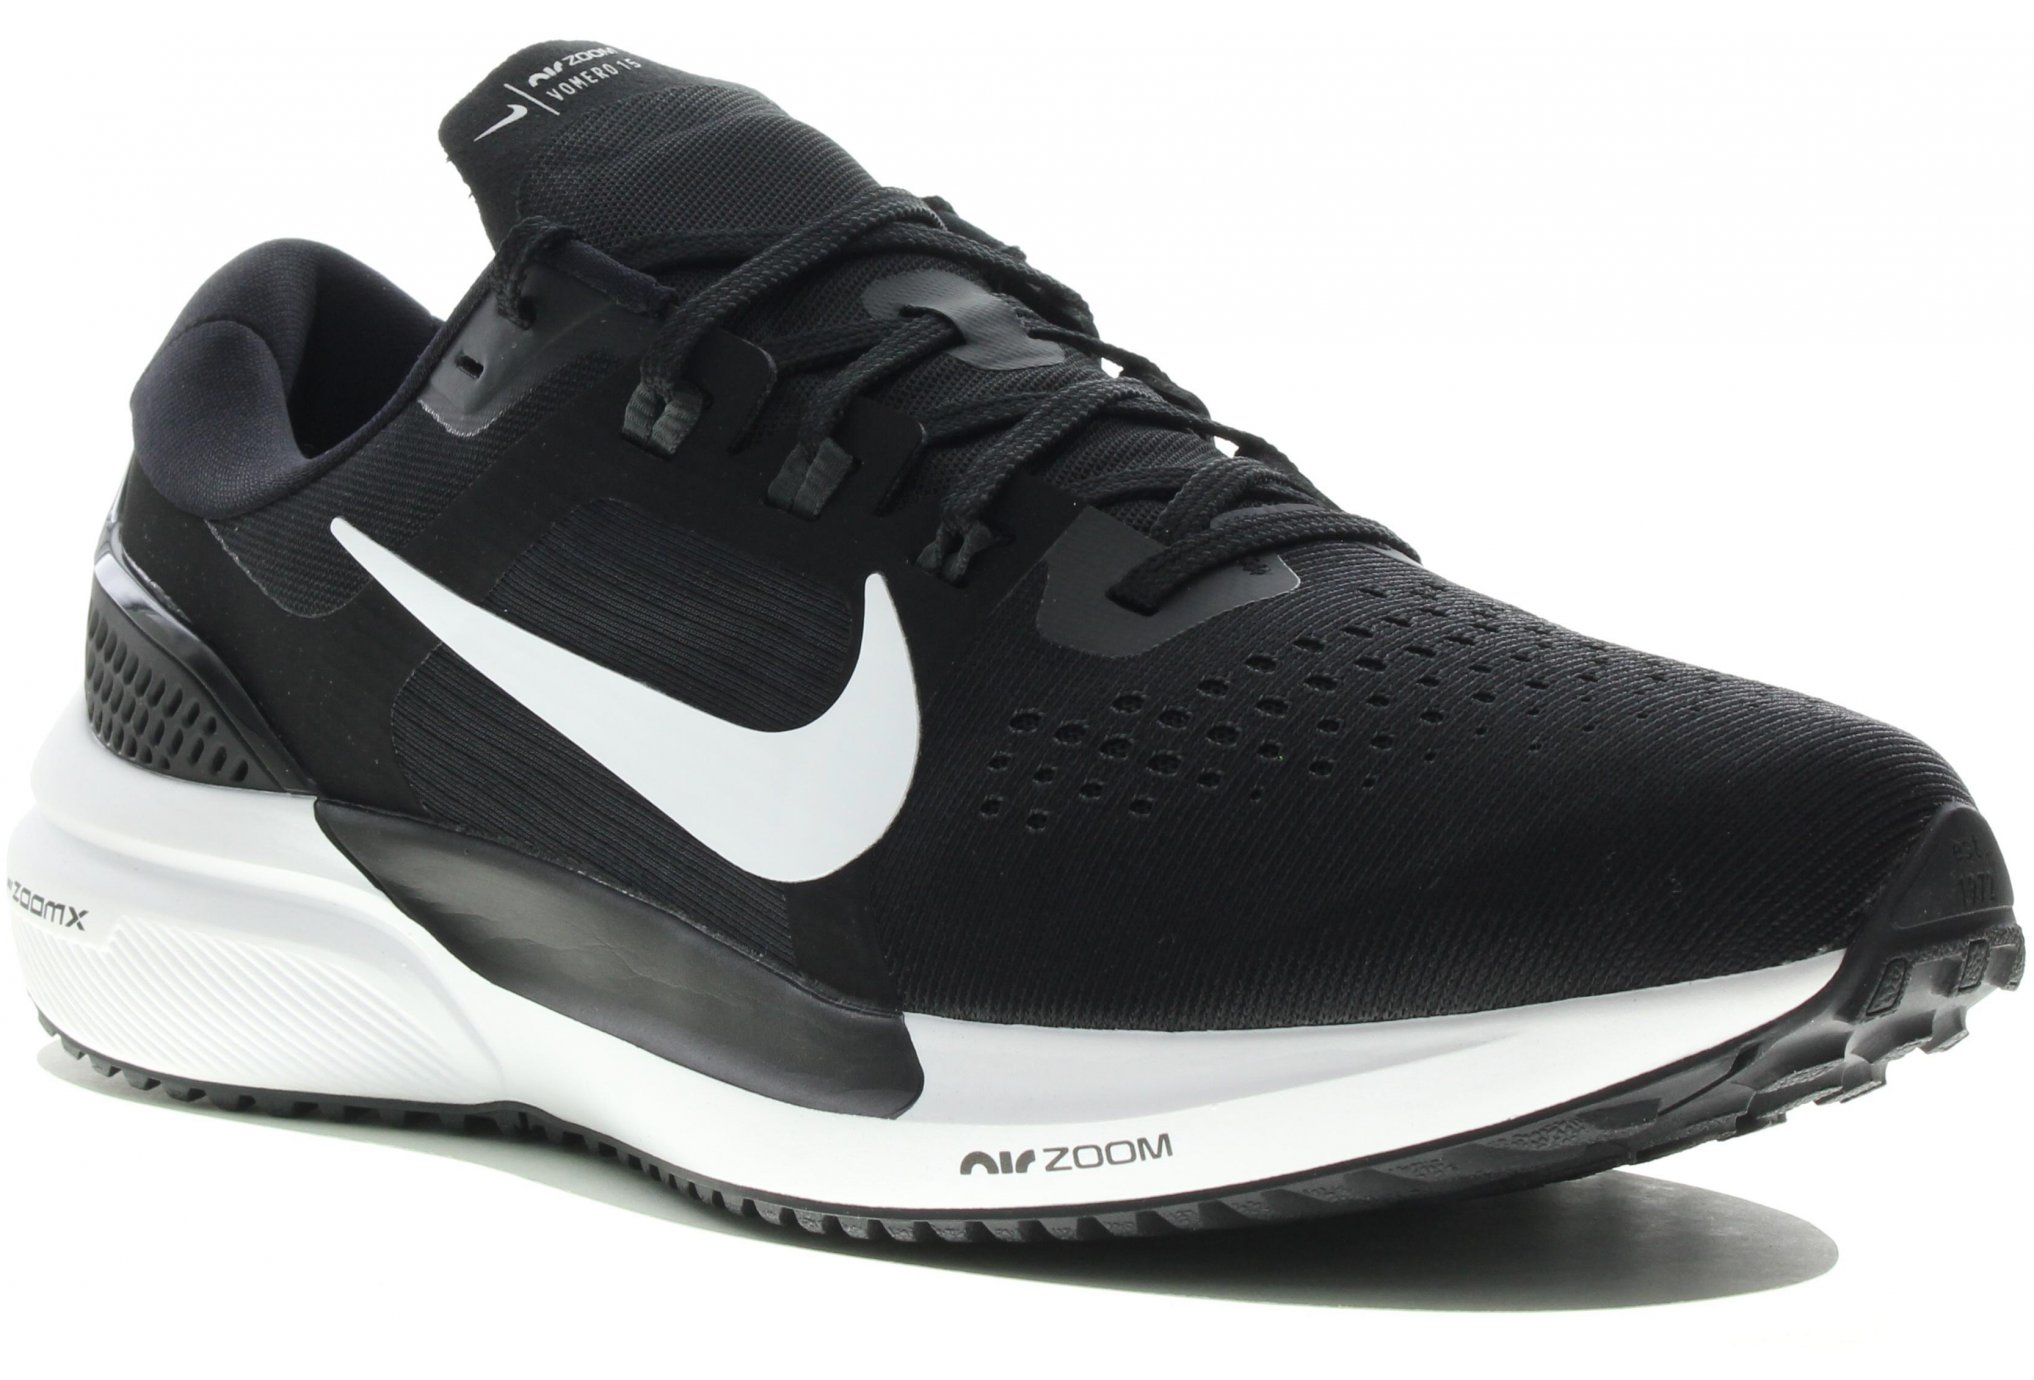 Nike Air Zoom Vomero 15 Chaussures homme